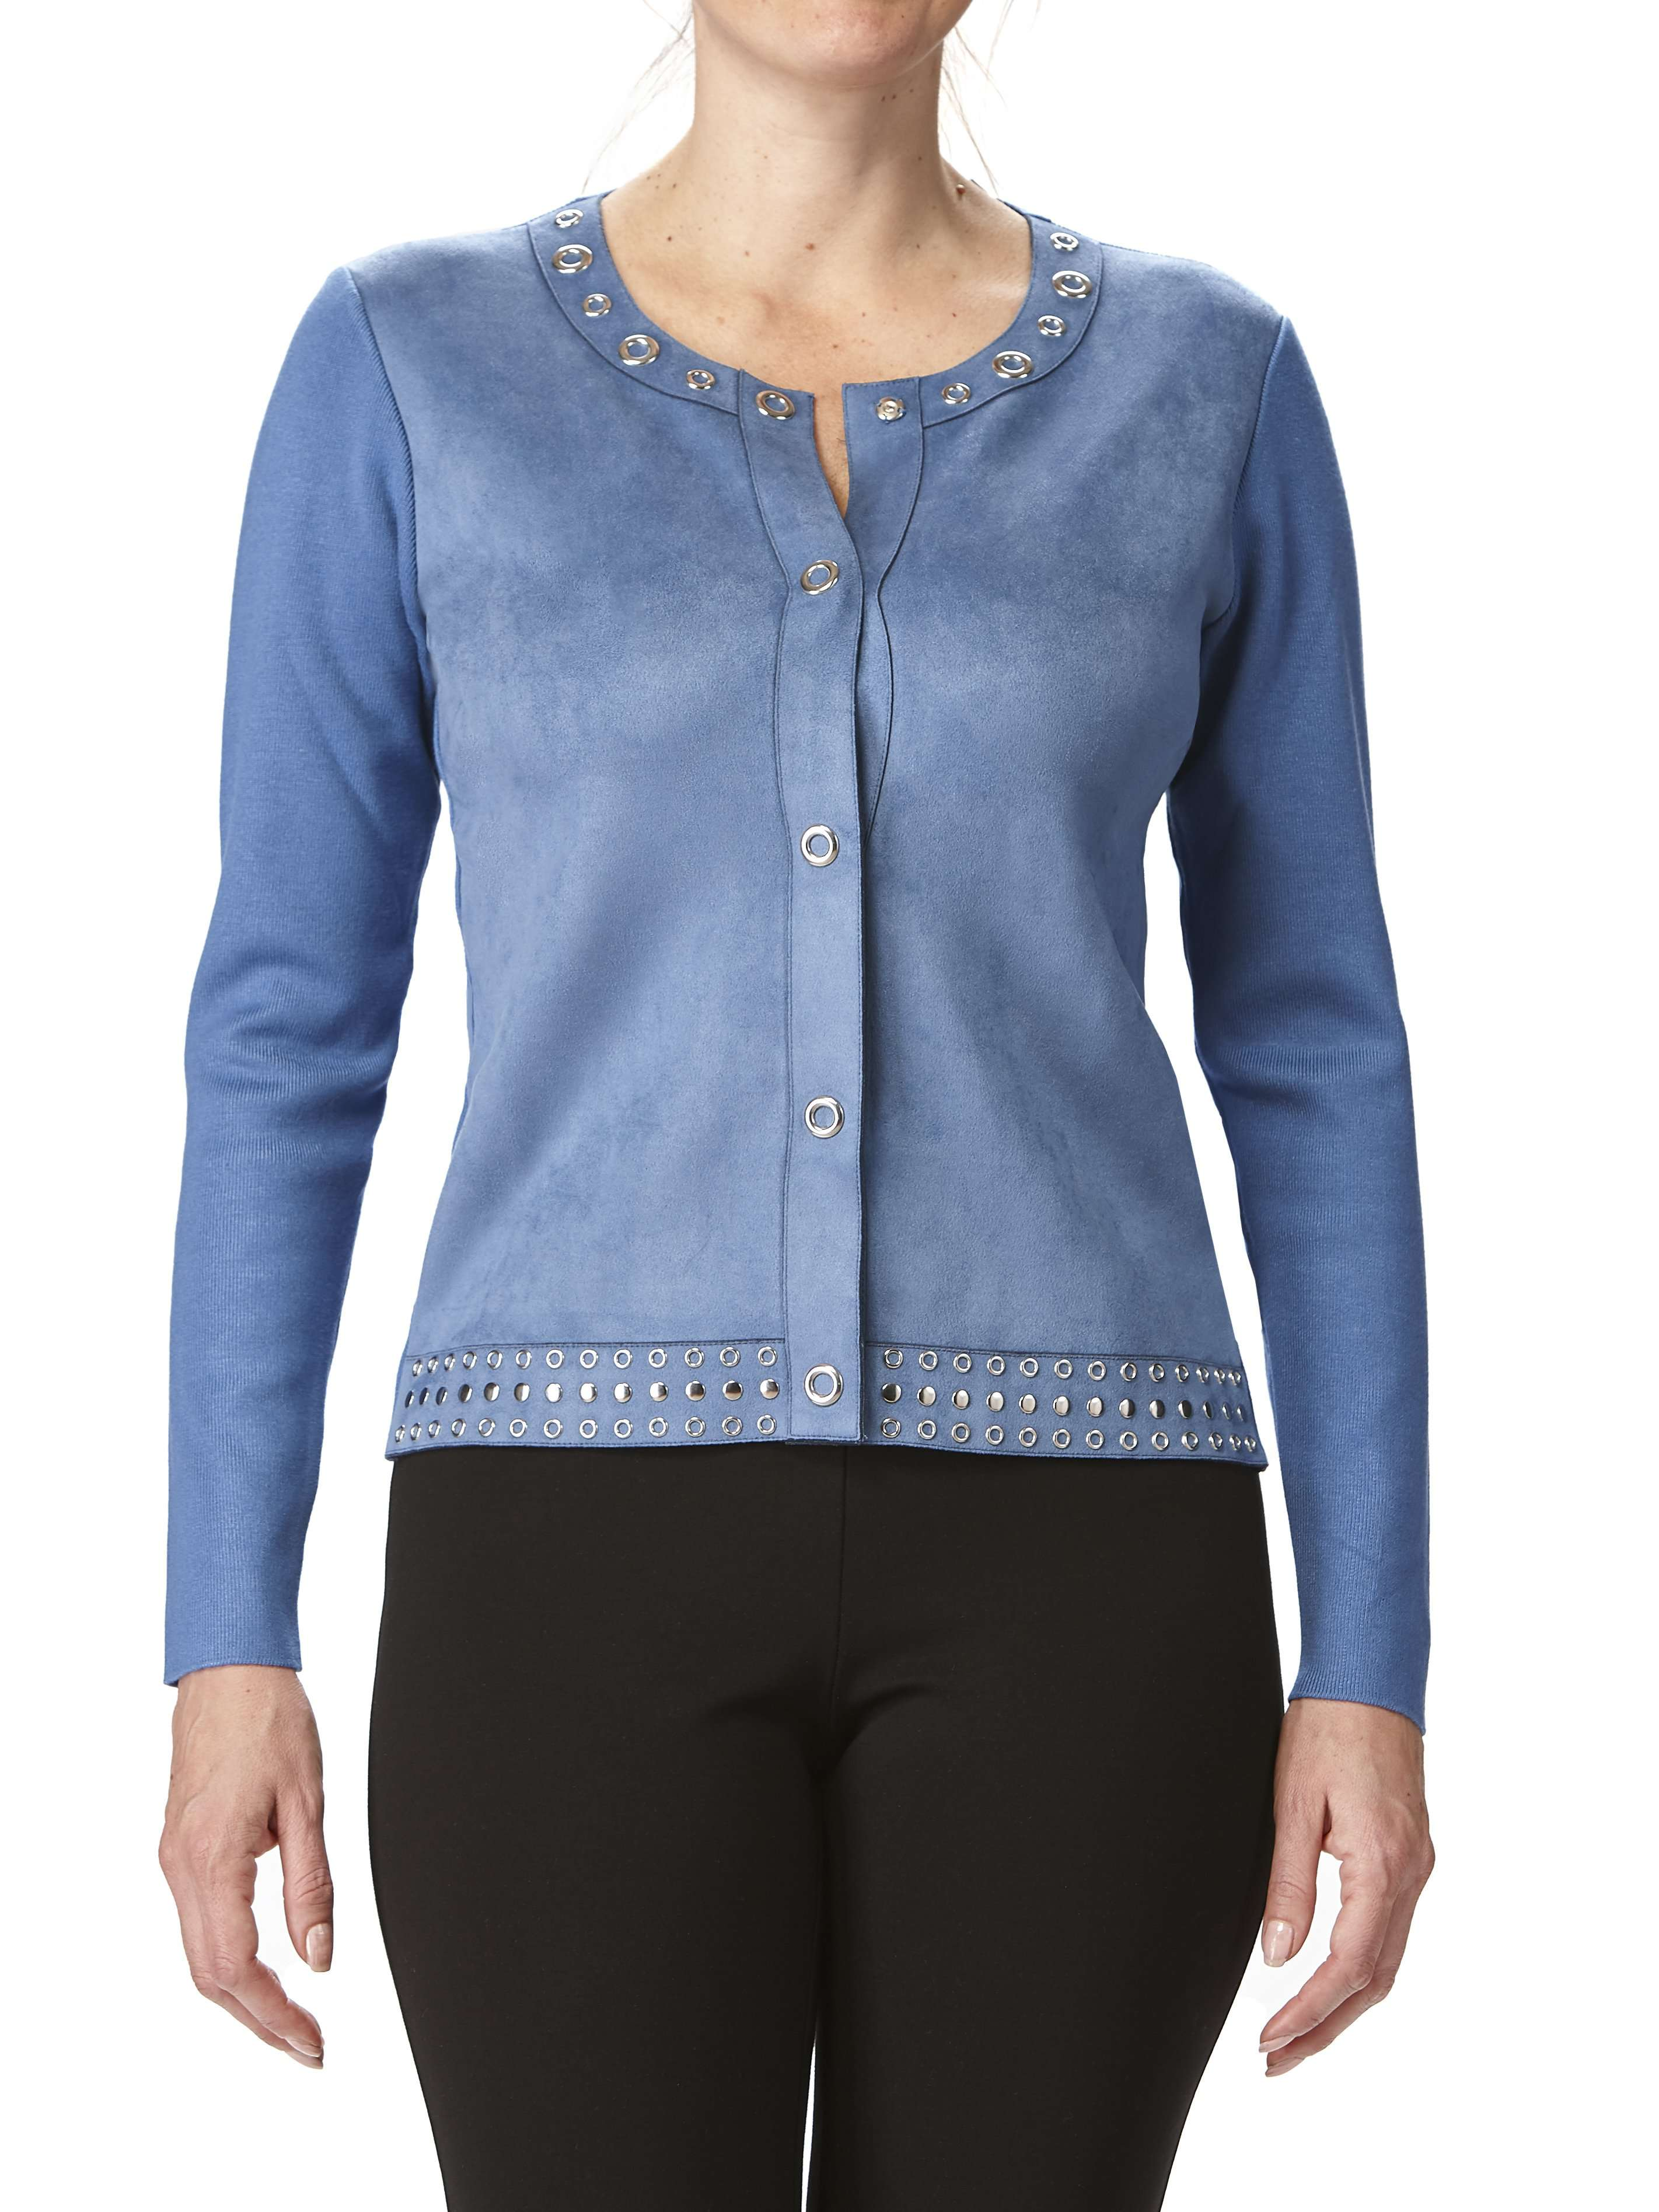 Women's Blue Suede Jacket With Eyelets - Yvonne Marie - Yvonne Marie